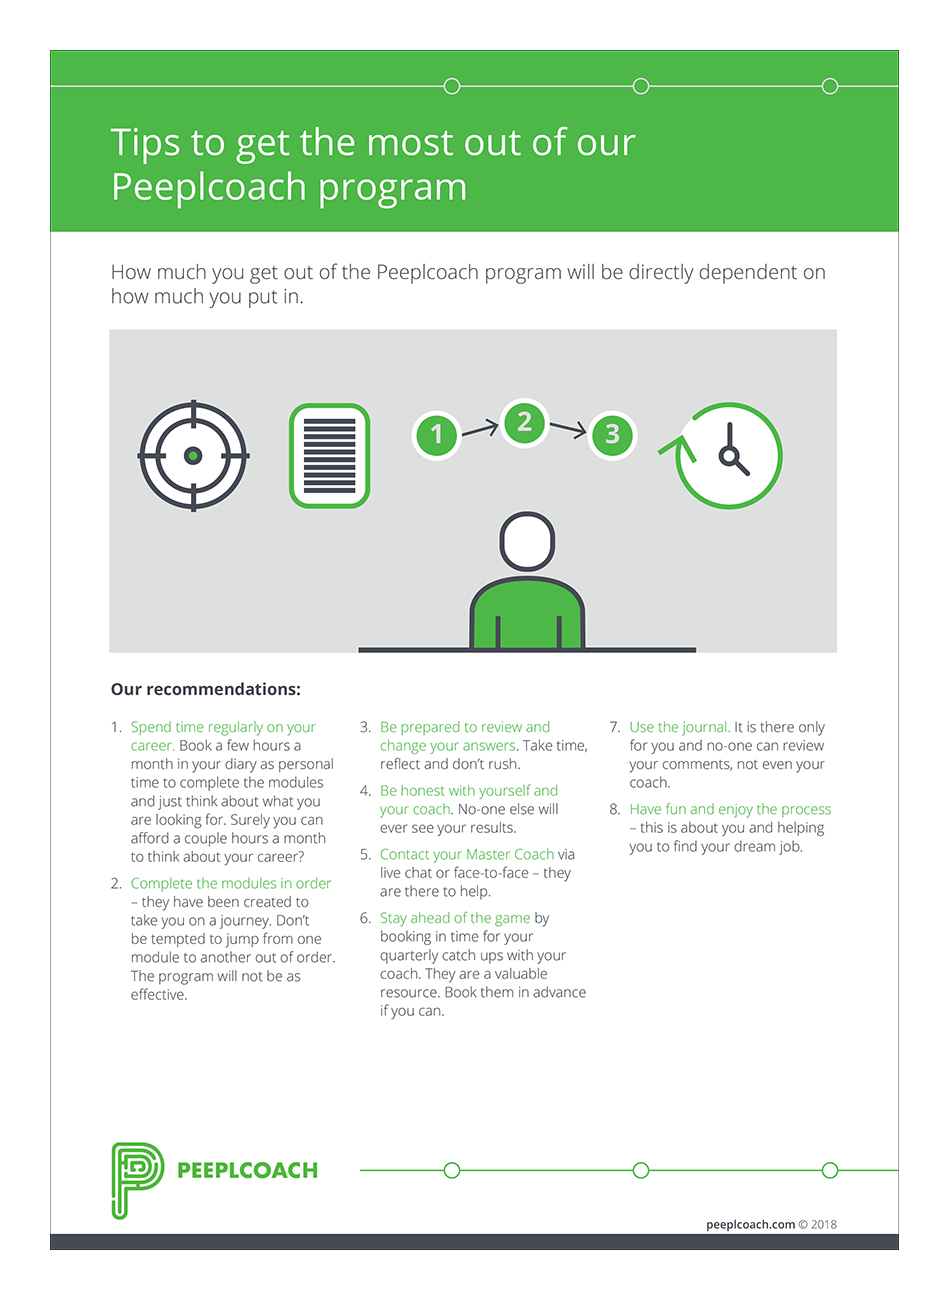 Peeplcoach-information-sheets-graphic-design-3.jpg